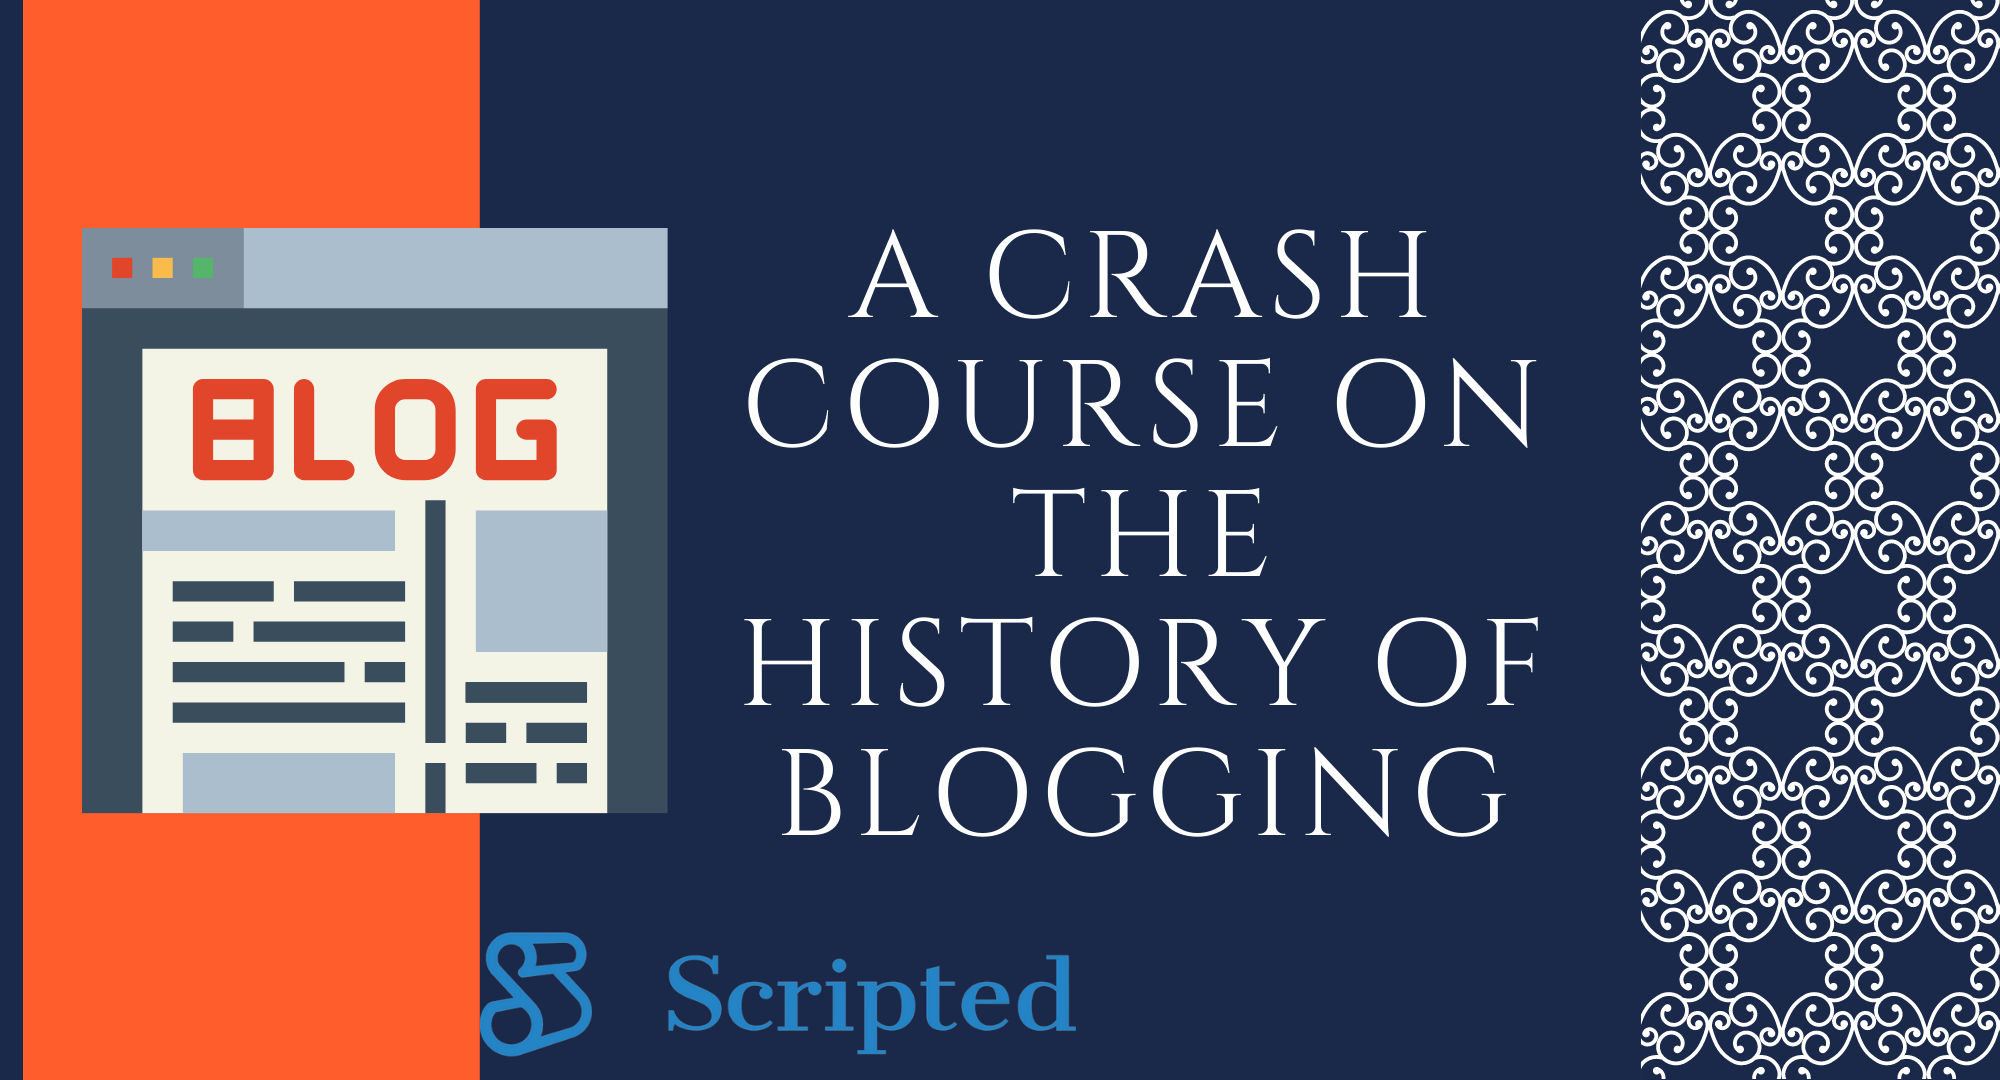 A Crash Course on the History of Blogging